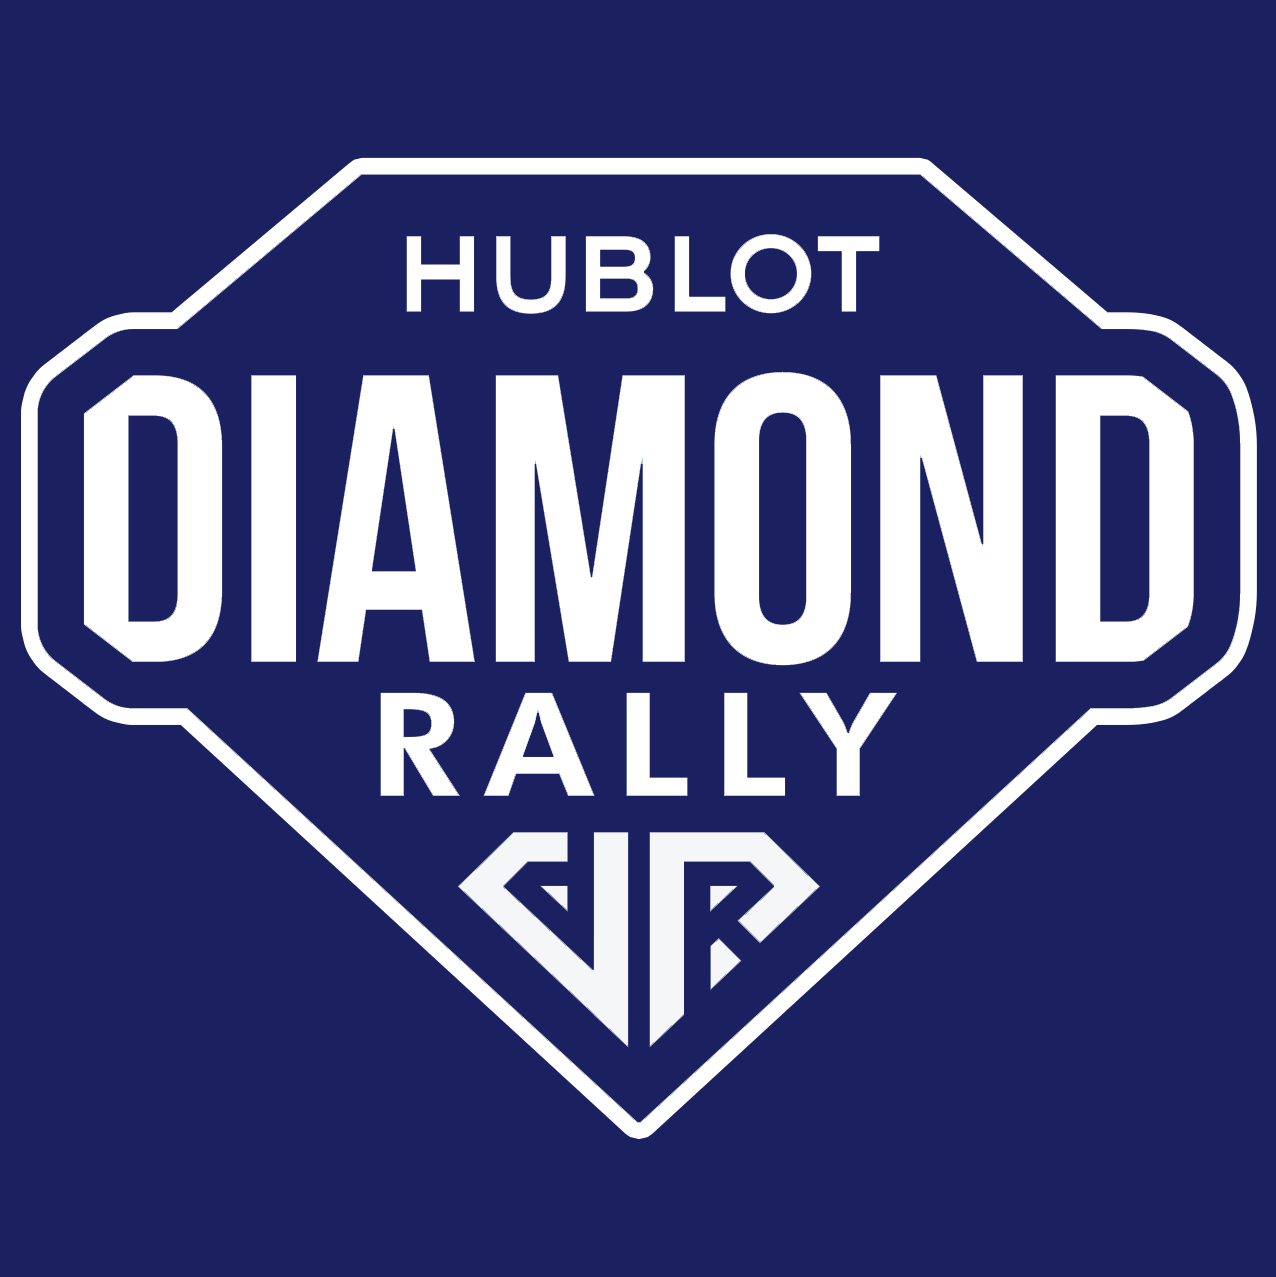 Hublot Diamond Rally